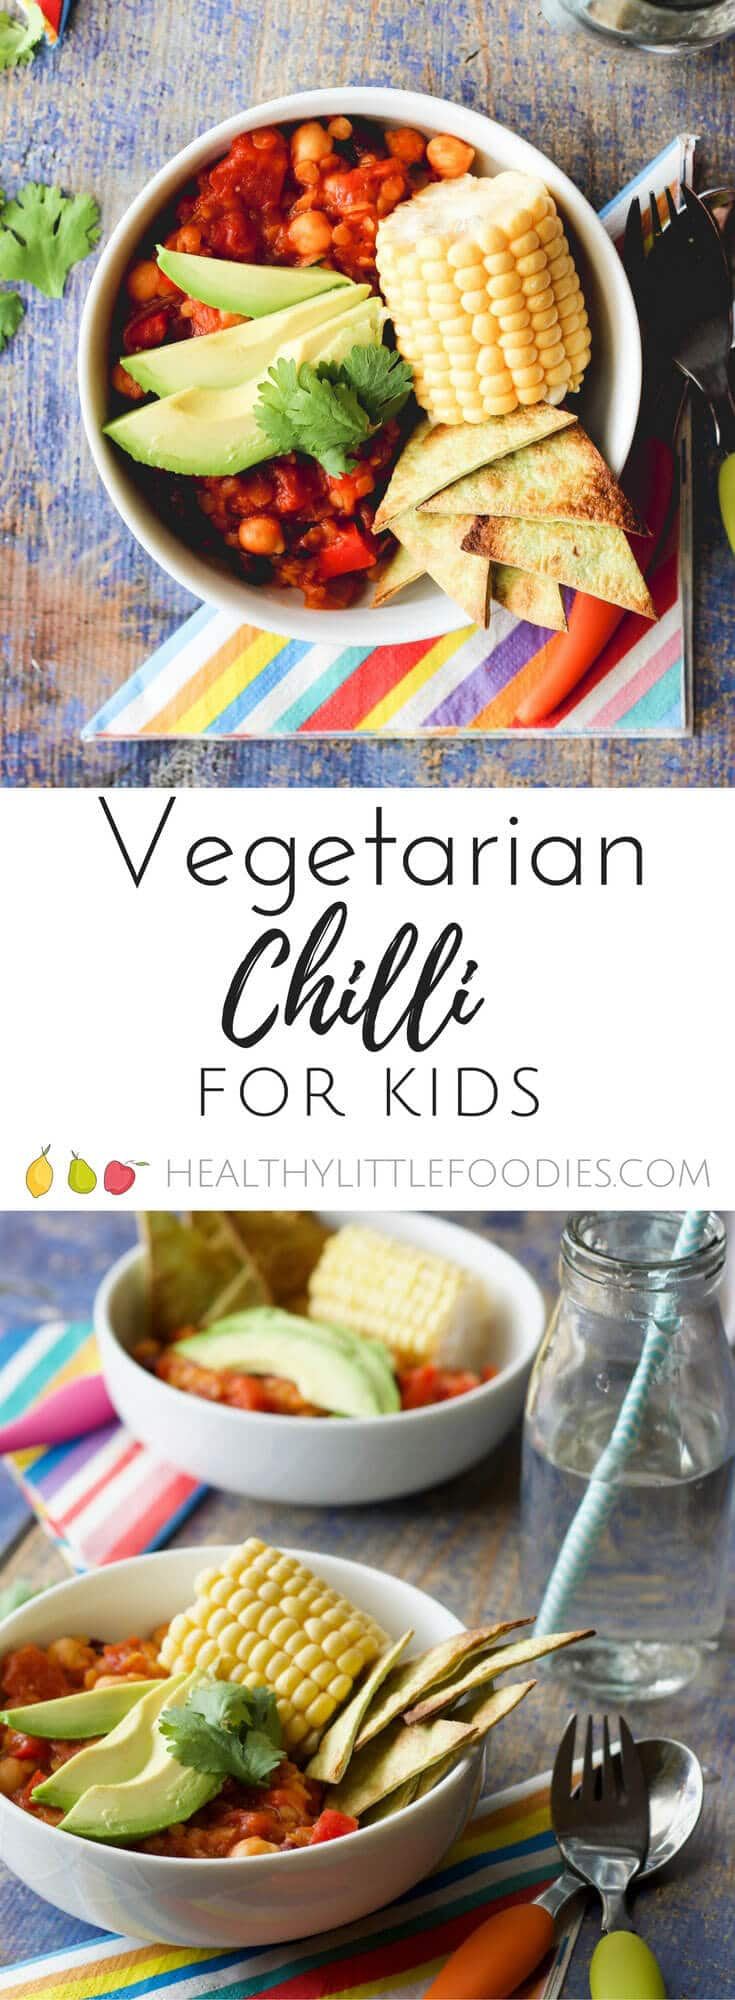 vegetarian chilli for kids. A one pot meal packed with hidden veg. vegan, vegetarian, dairy free & healthy.